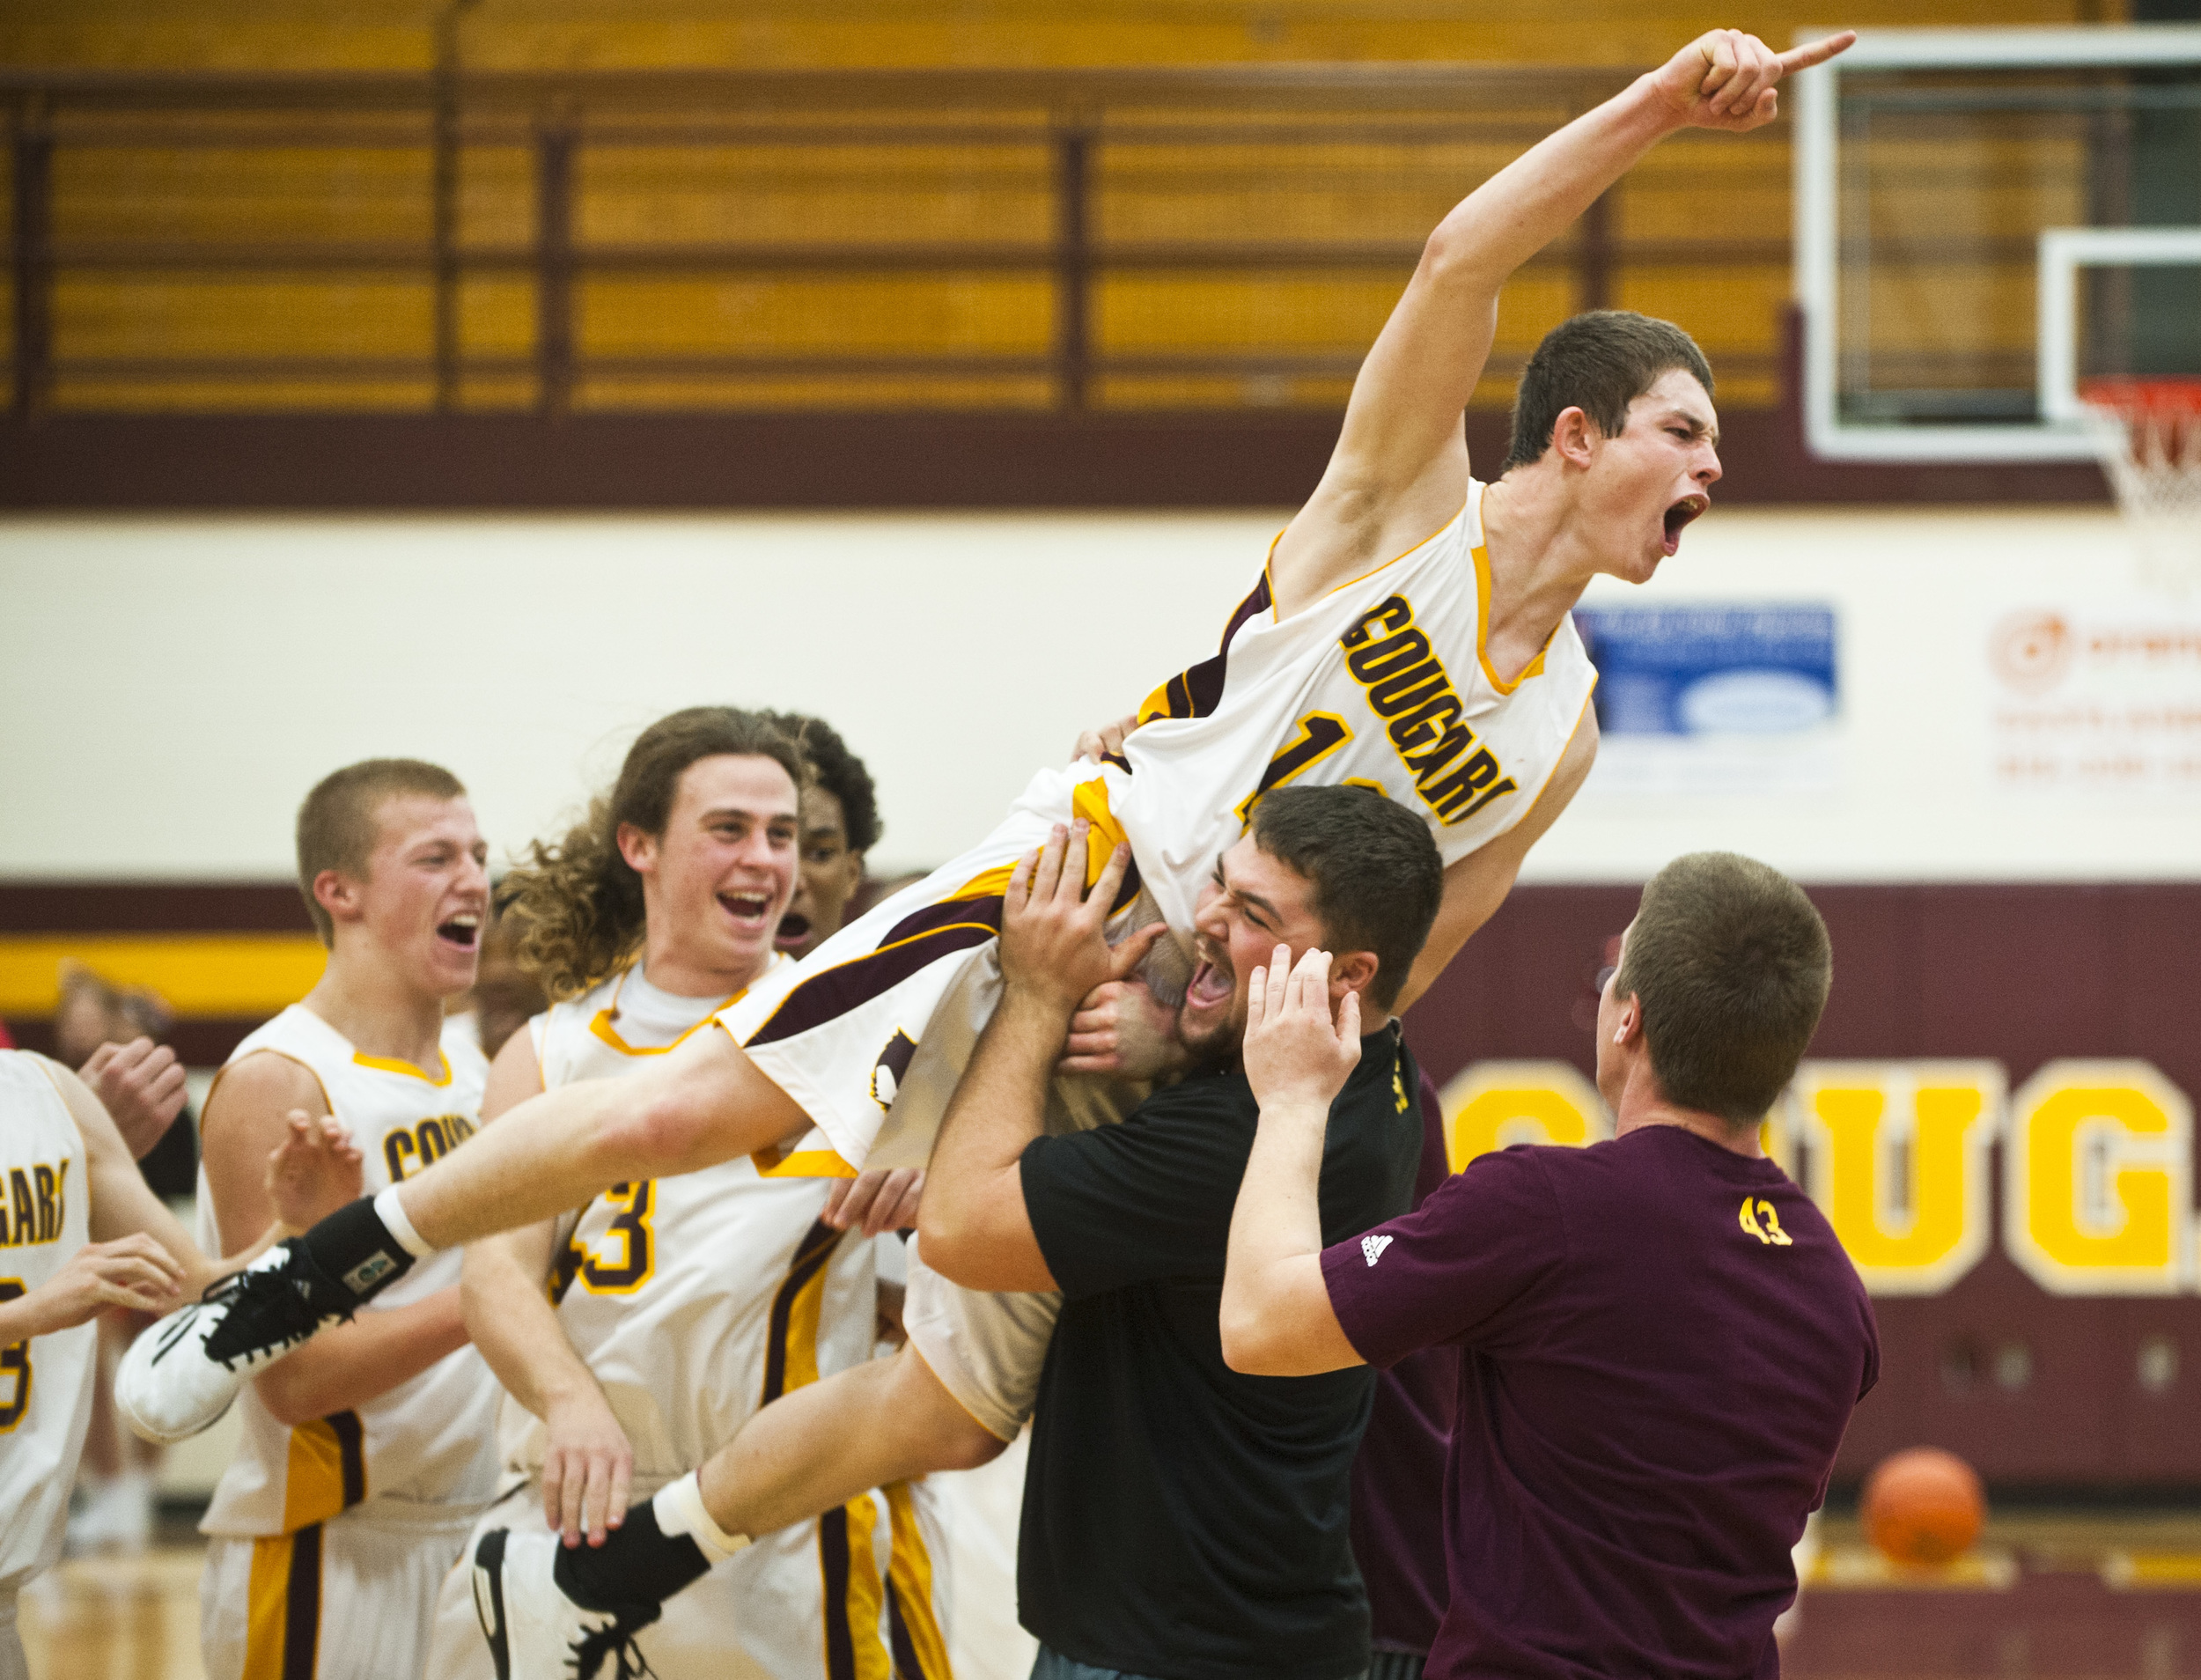 Bloomington North's Jacob Treadway shouts out in victory following the Cougar's triumph over Center Grove on Saturday, December 6 in Bloomington, Indiana.